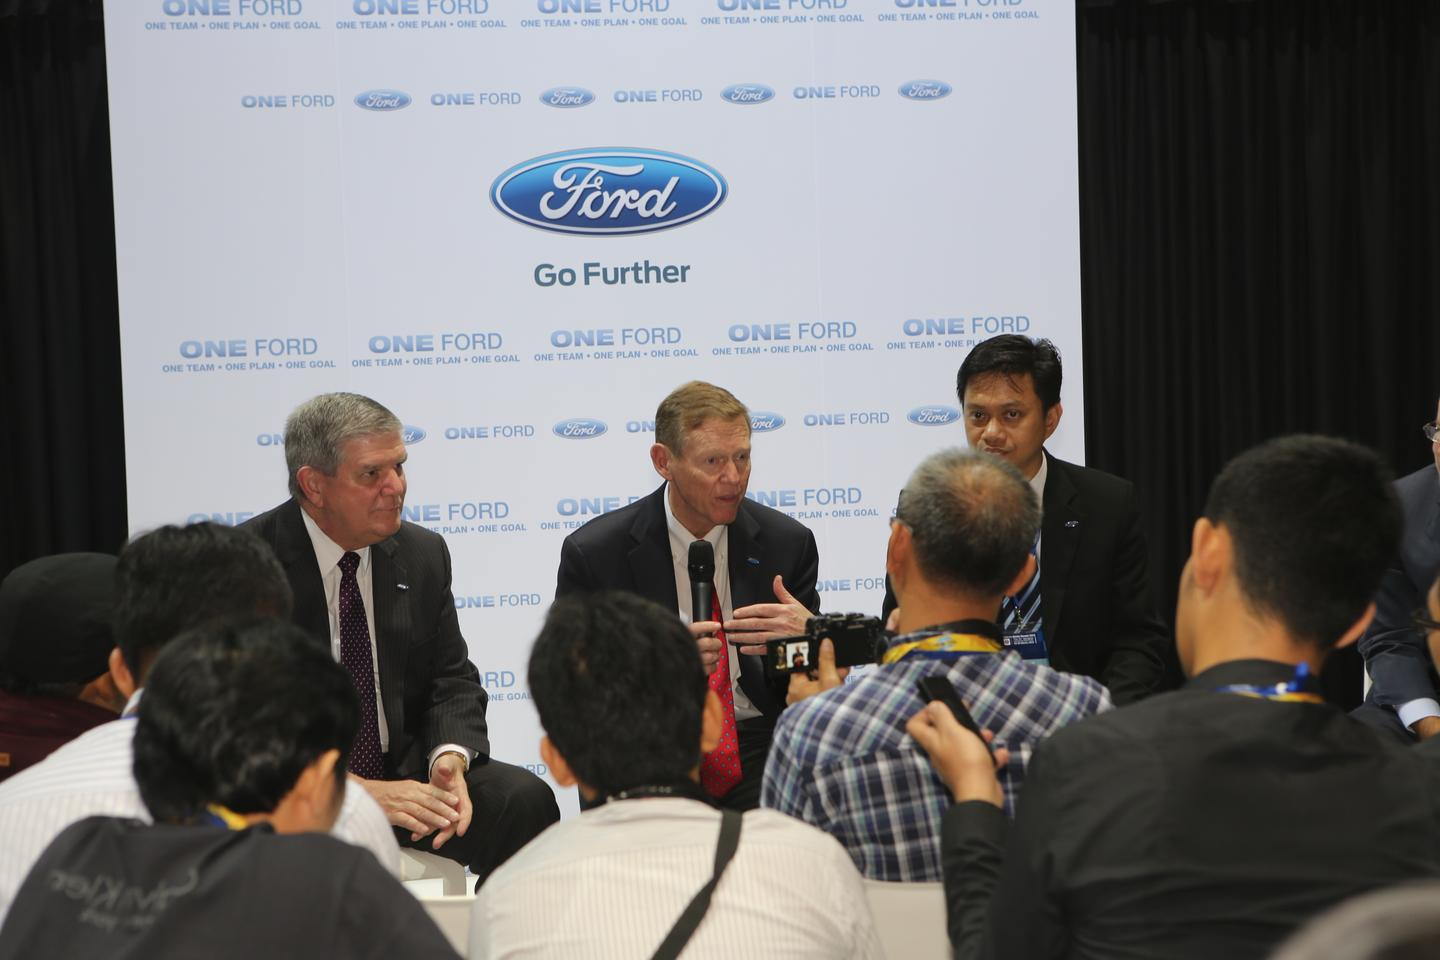 Alan Mullaly, the head of Ford Motor Company, meets dealers at the opening day of the Bangkok International Motor Show, 2013 (Photo: Husna Namirembe/Gizmag)